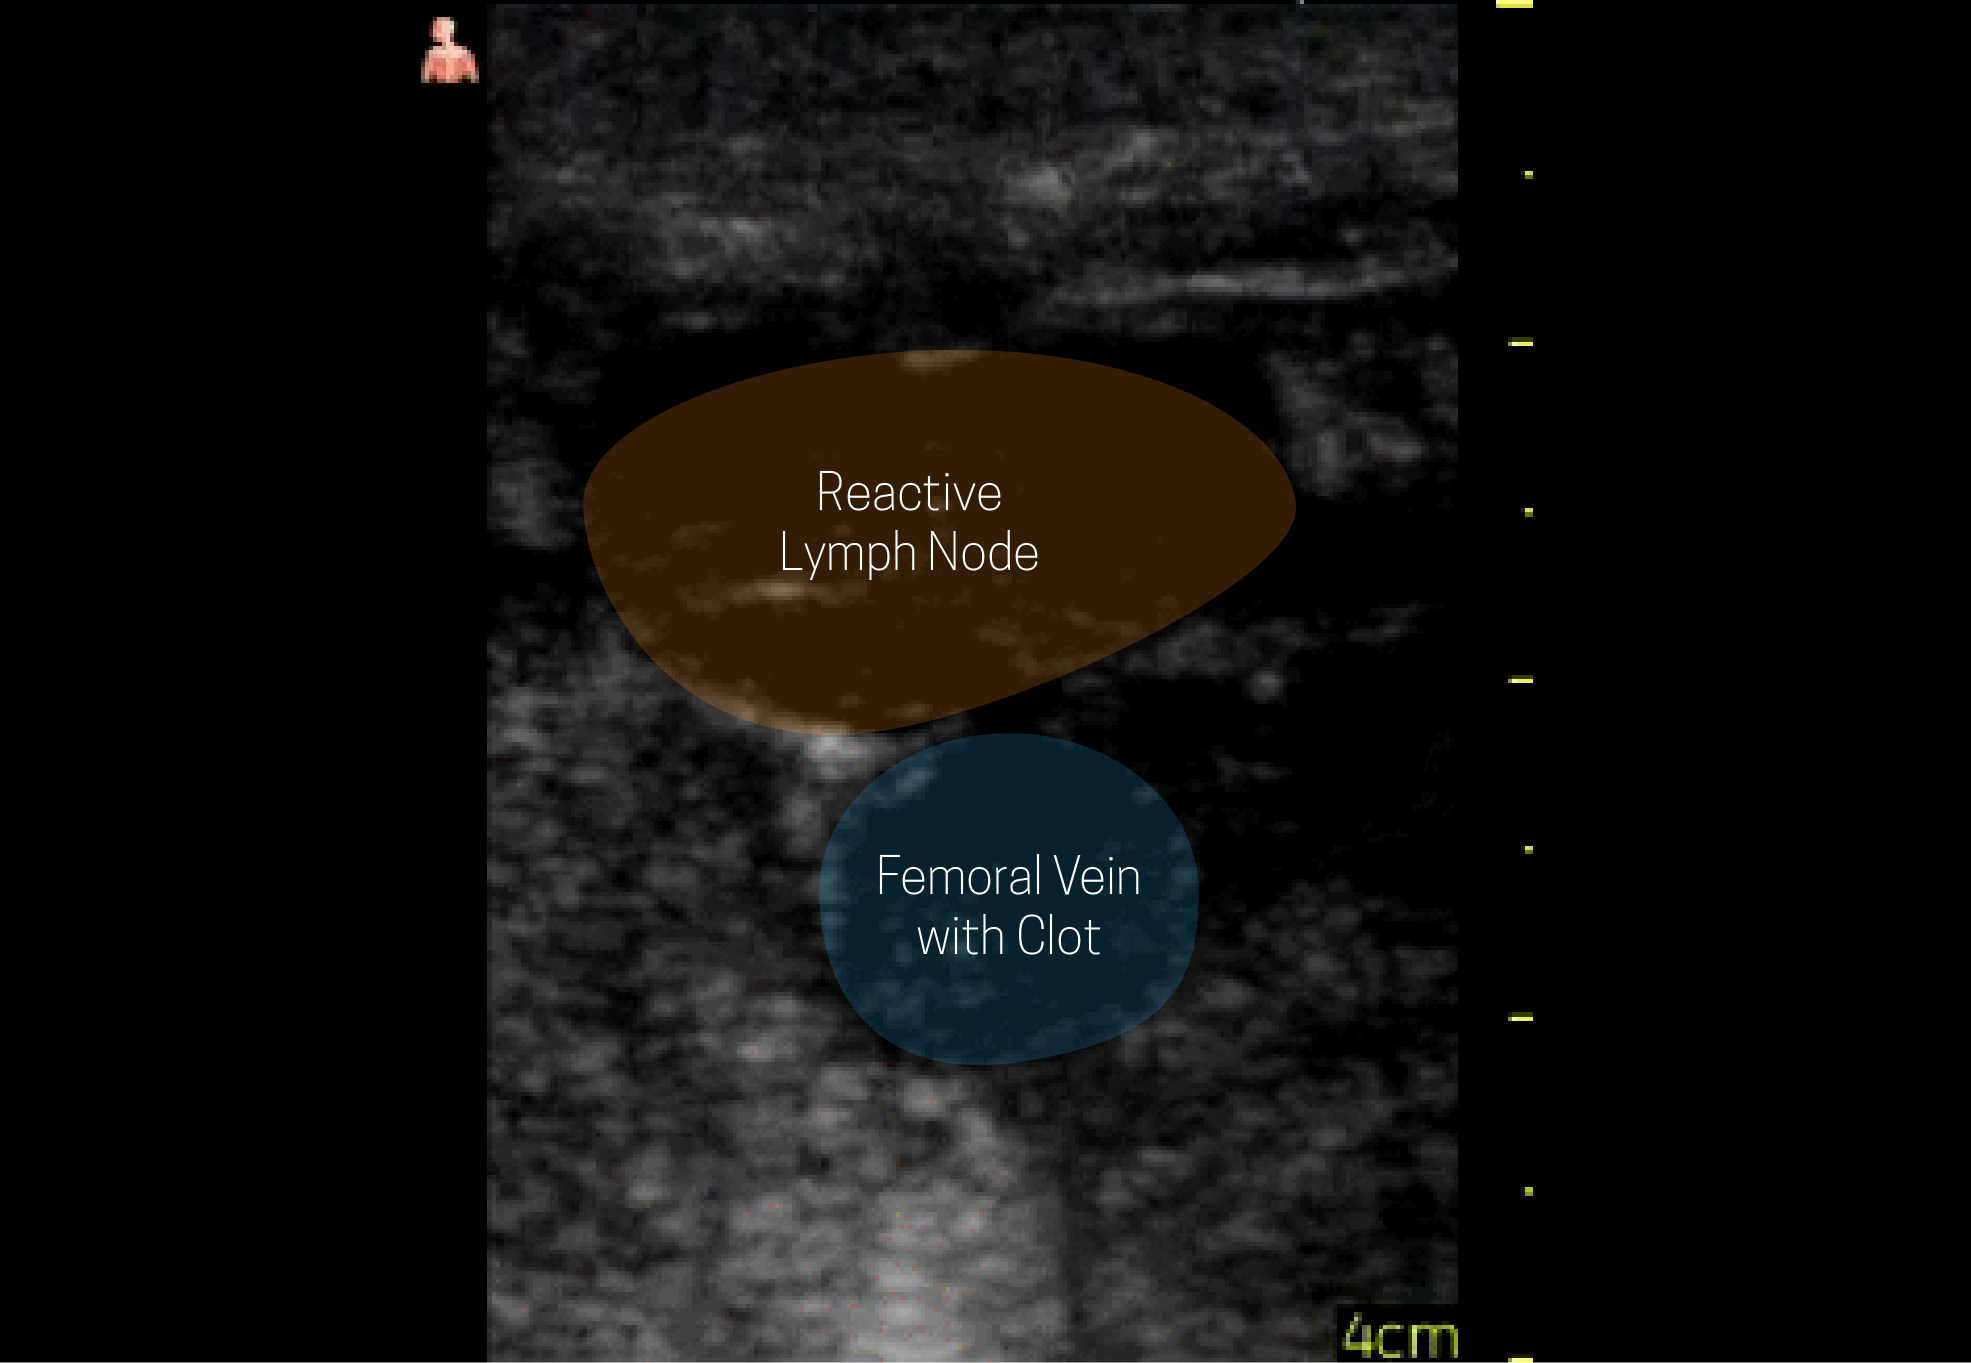 Structure identification from previous ultrasound views.